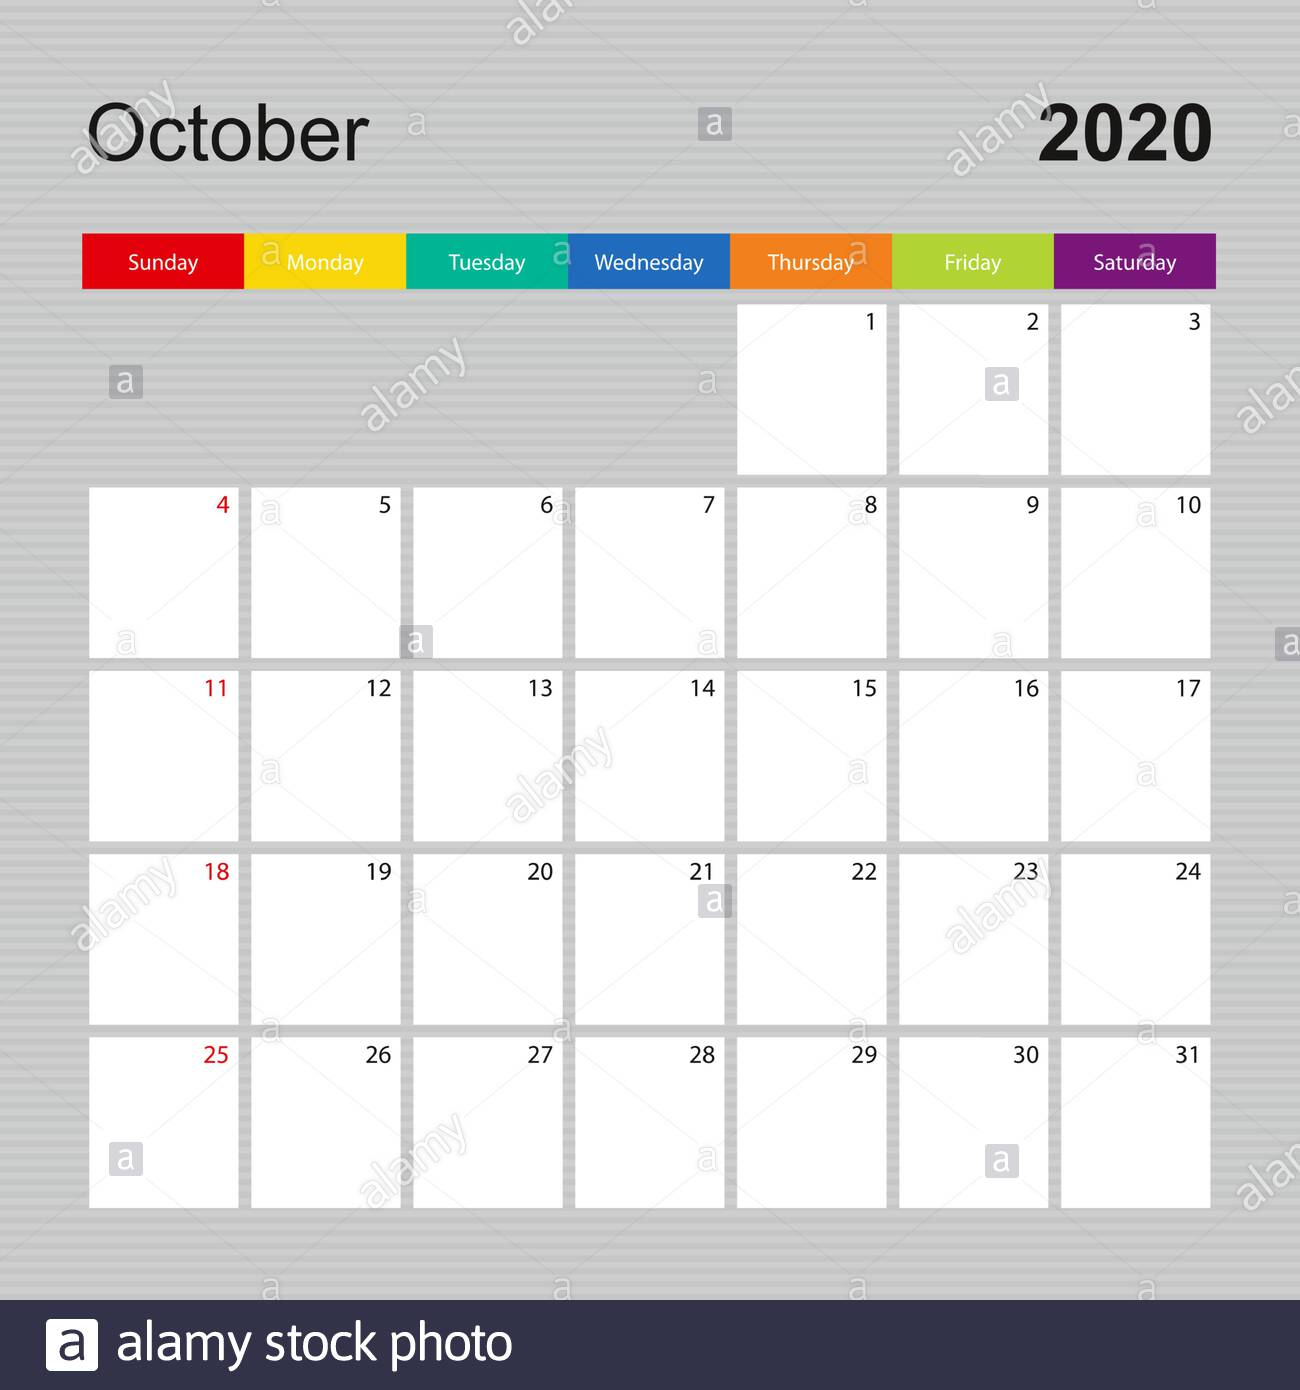 Сalendar Page For October 2020, Wall Planner With Colorful